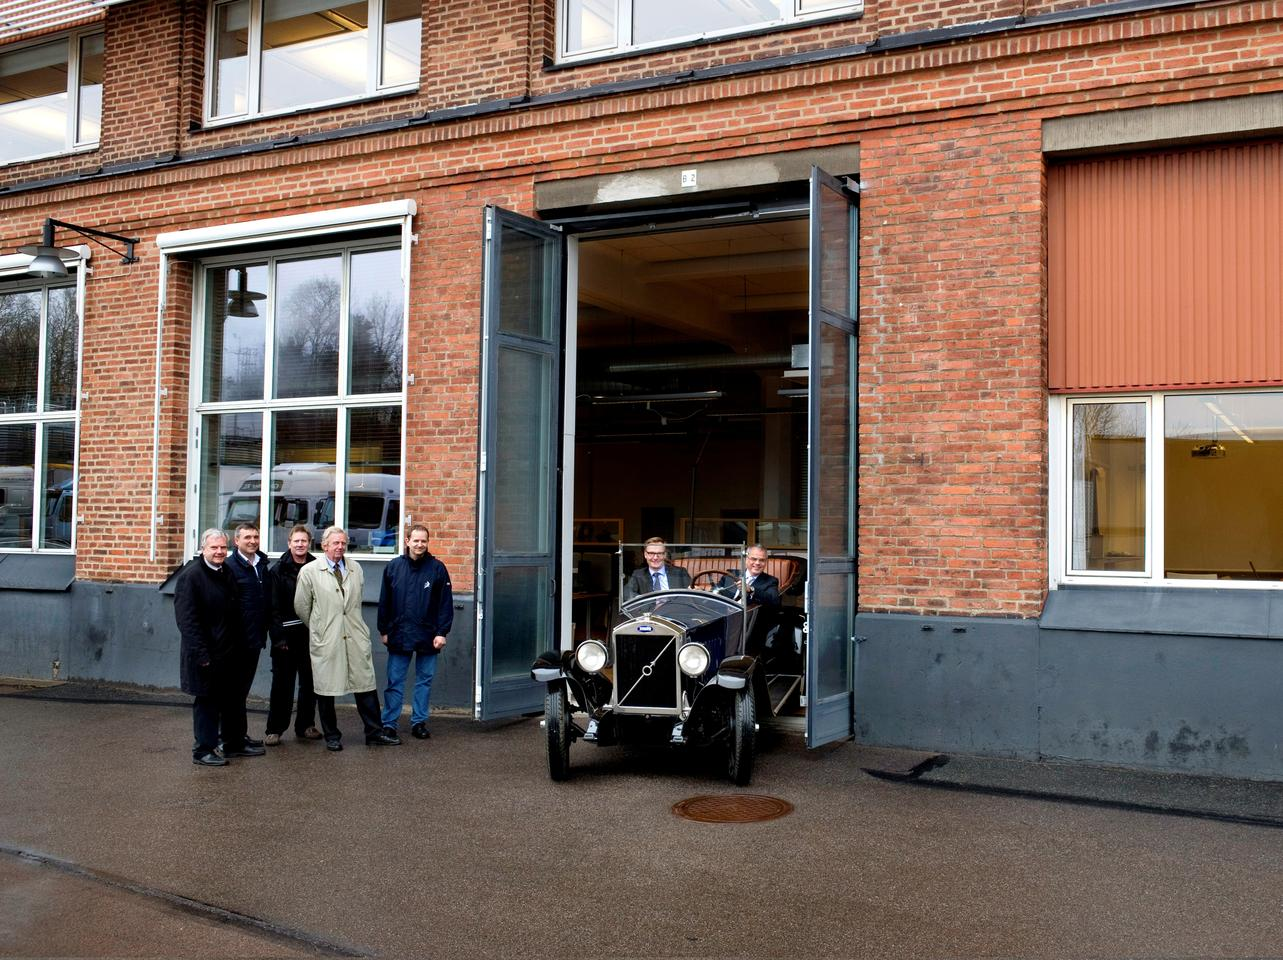 At 10am, April 14, 2012, the first mass-produced Volvo ÖV4 will be driven through the company gates in Göteborg, reenacting the birth of a famous marque